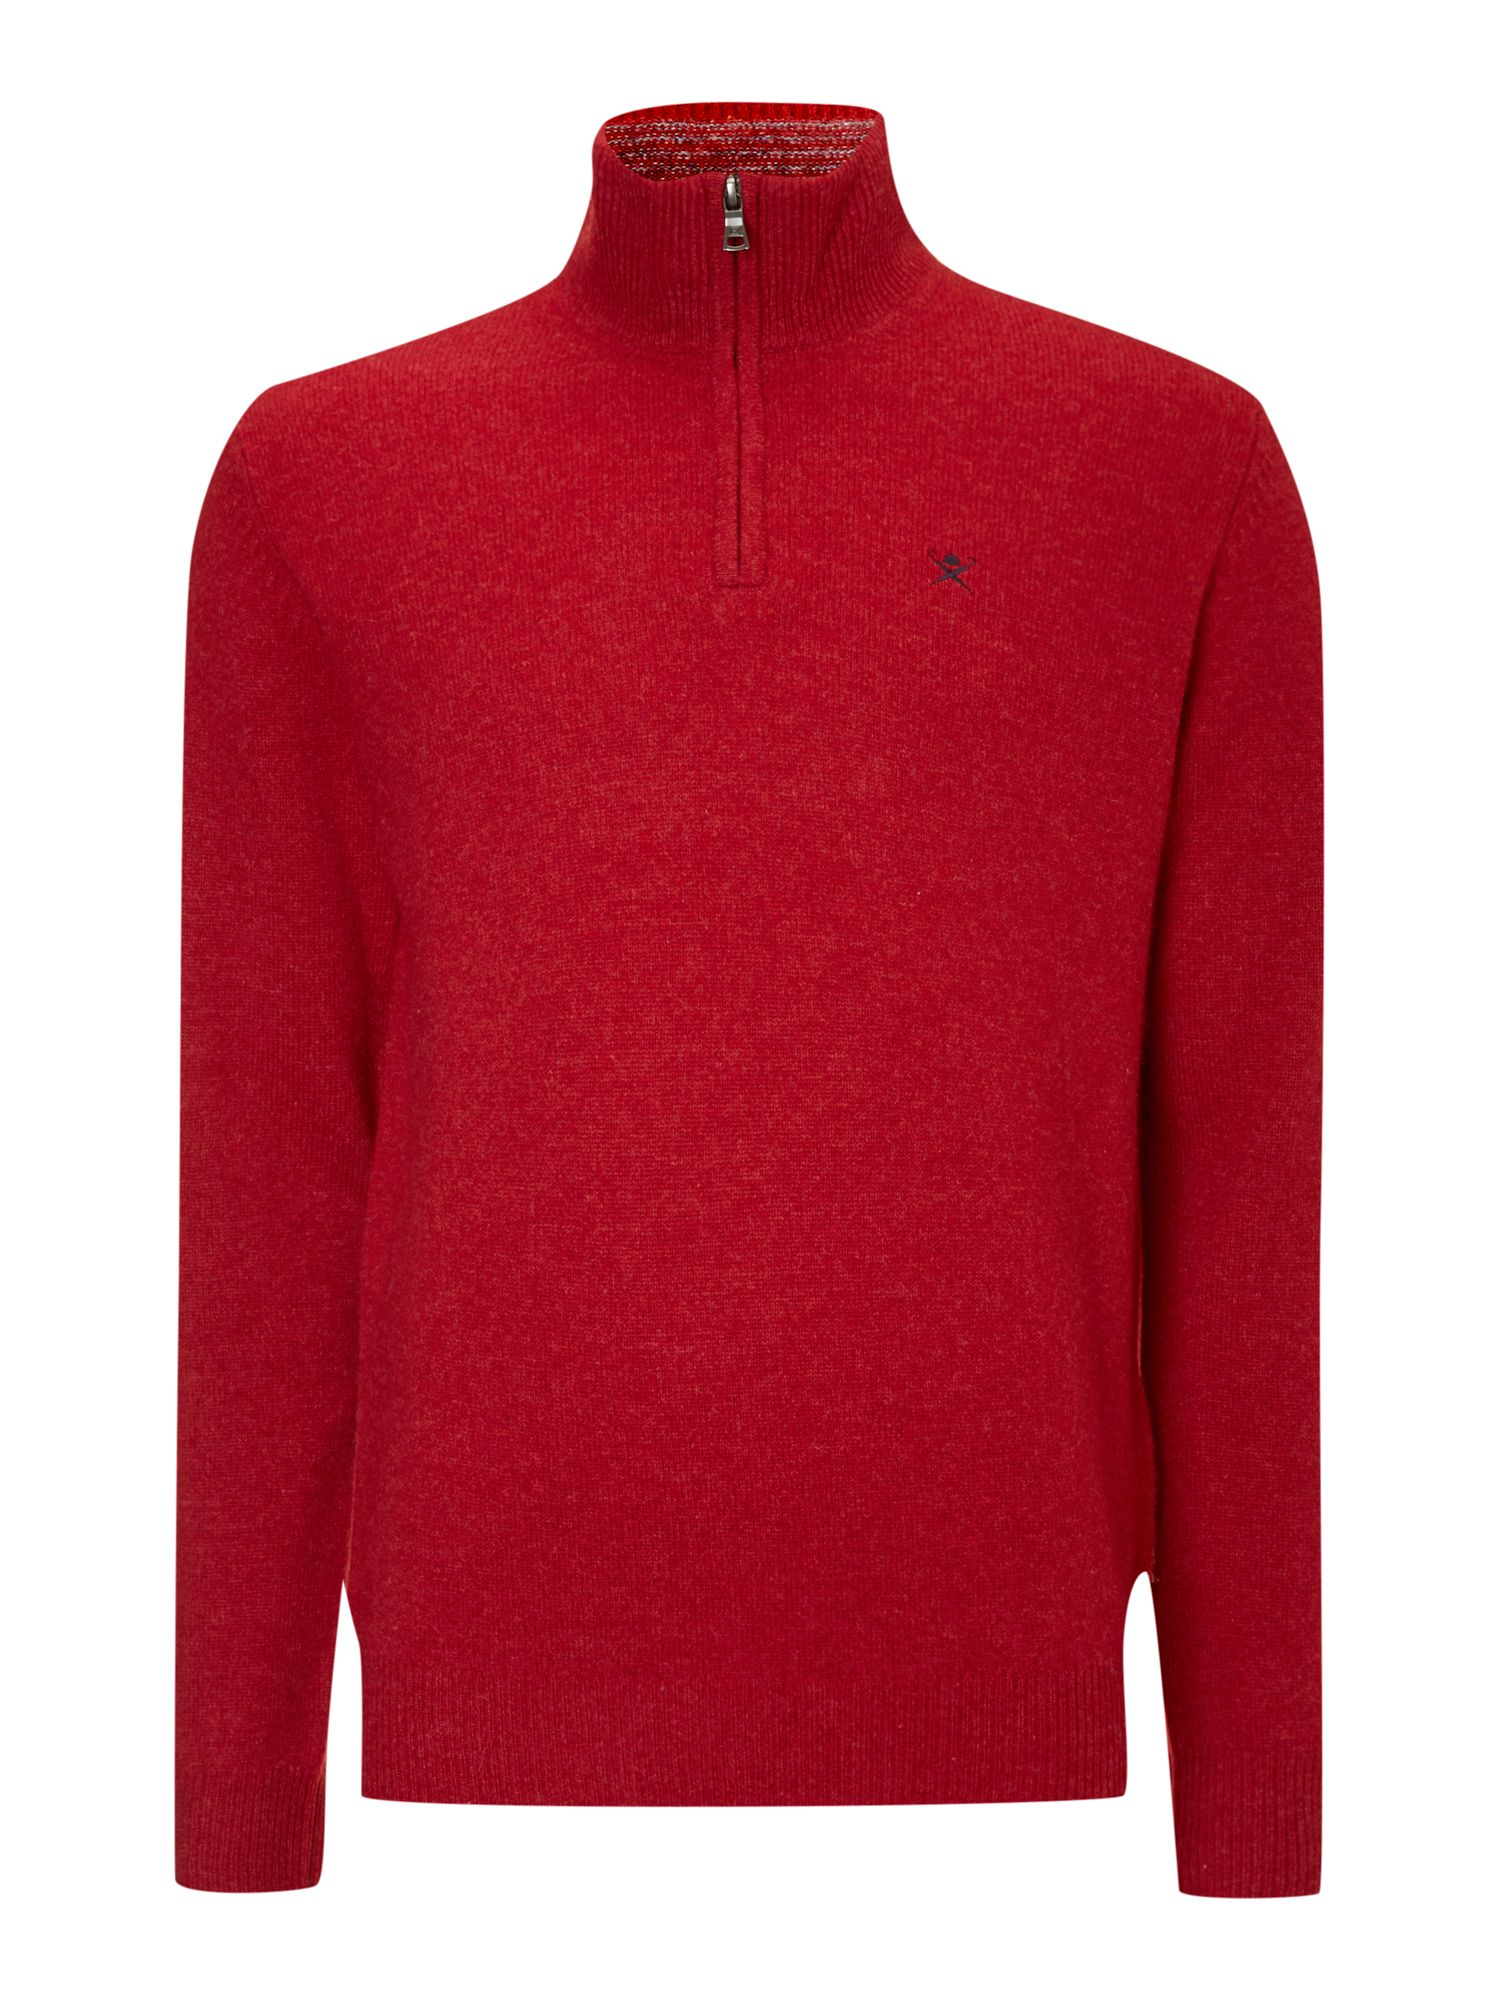 Half zip knit with logo